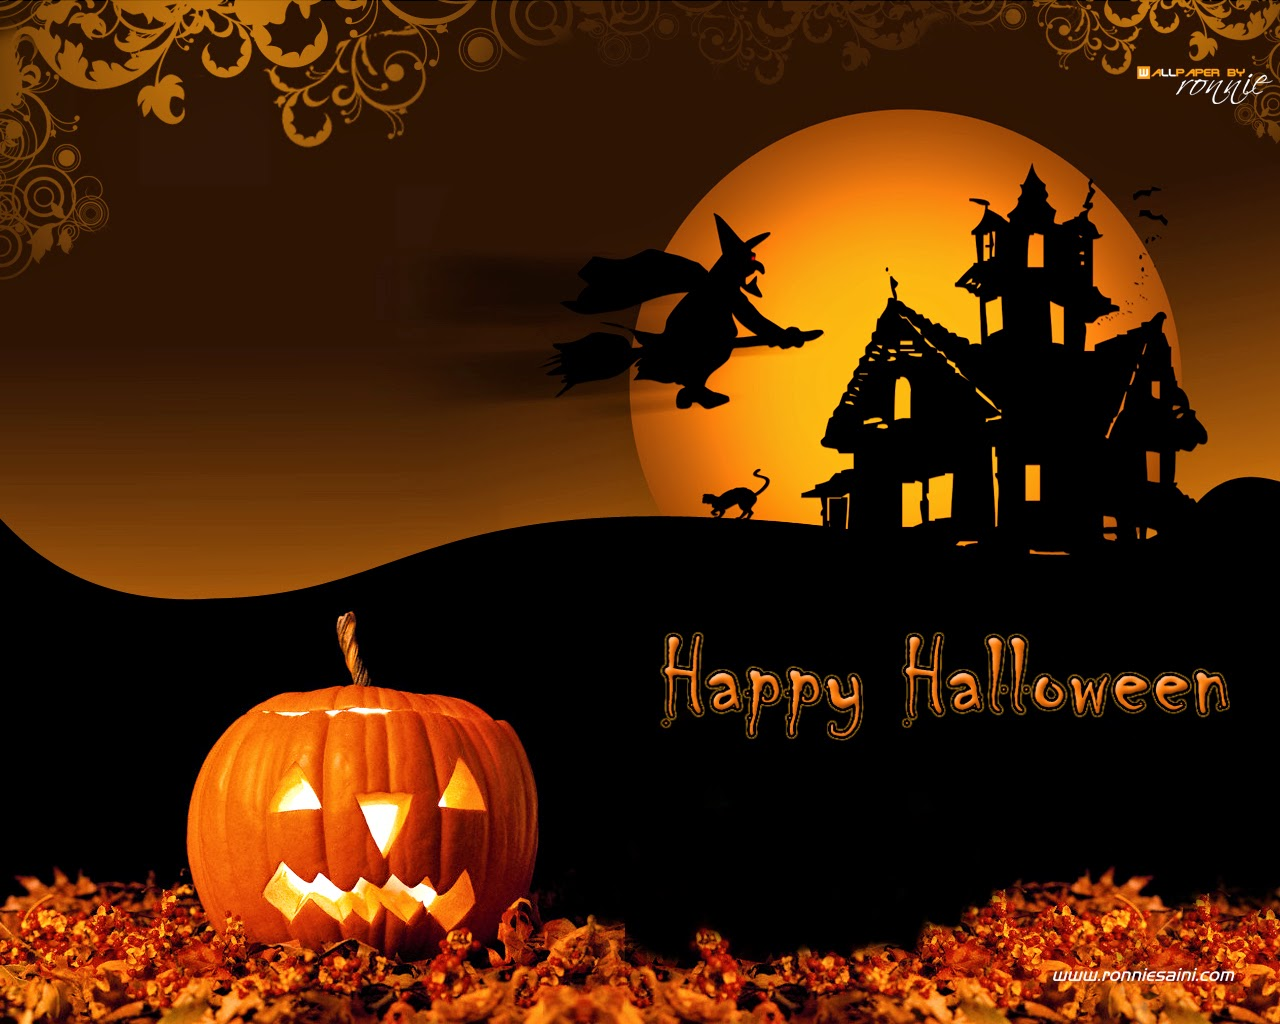 Halloween 2015 Background Wallpaper